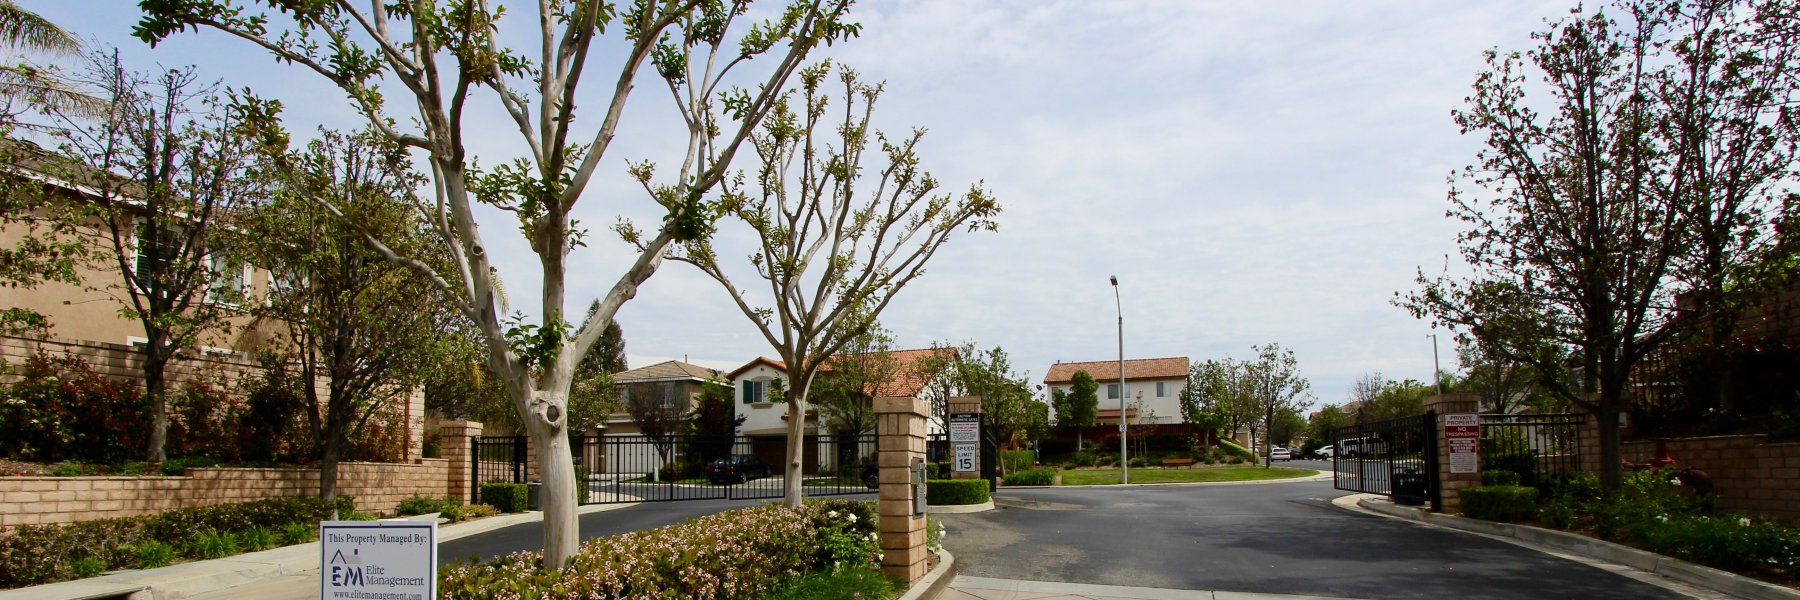 Laurel Creek is a gated community of homes in Temecula California